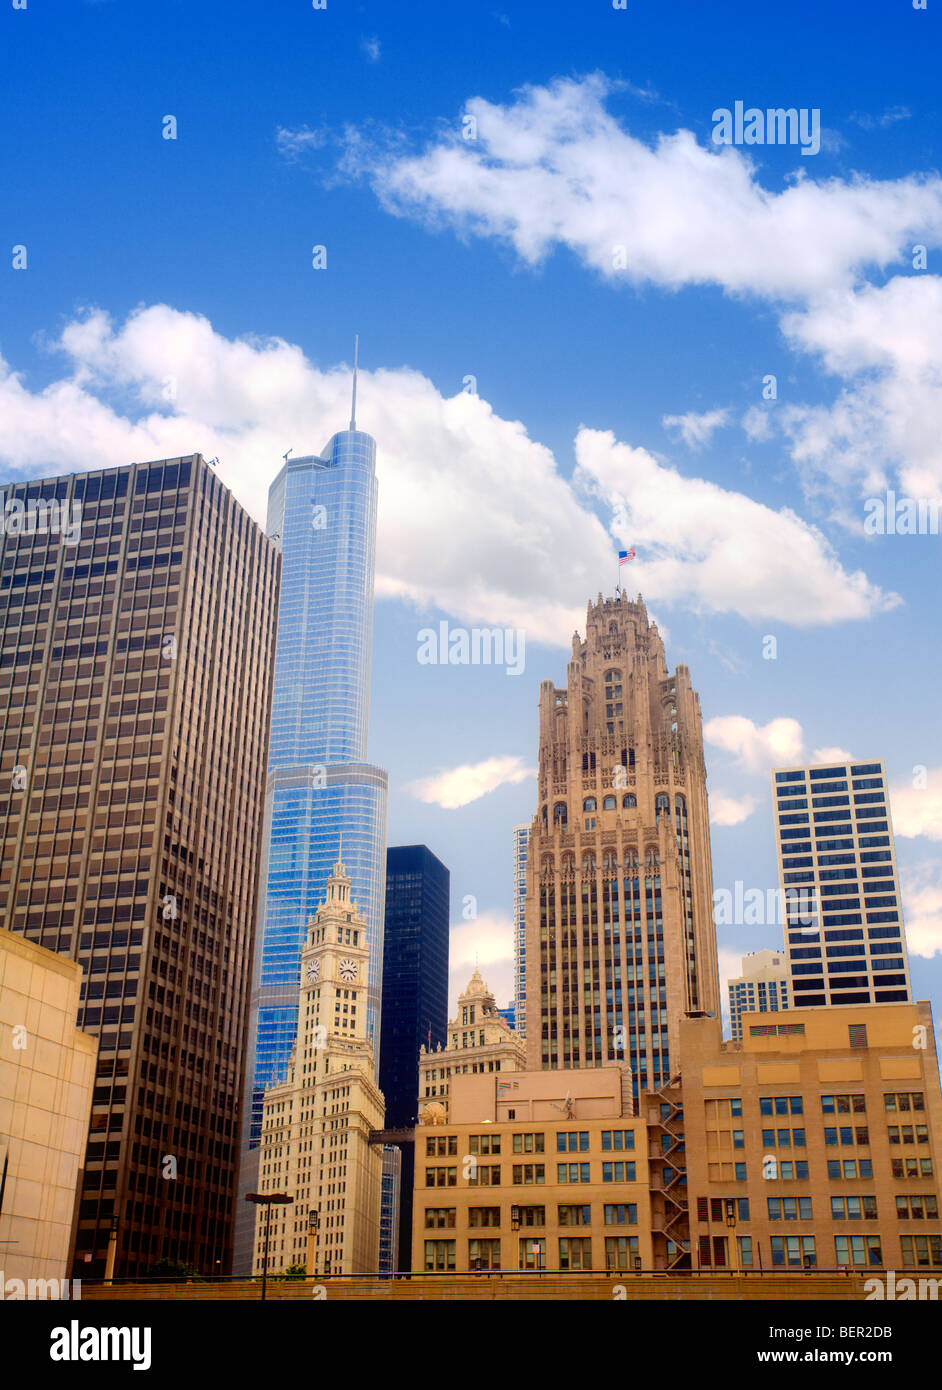 Downtown Chicago - Stock Image